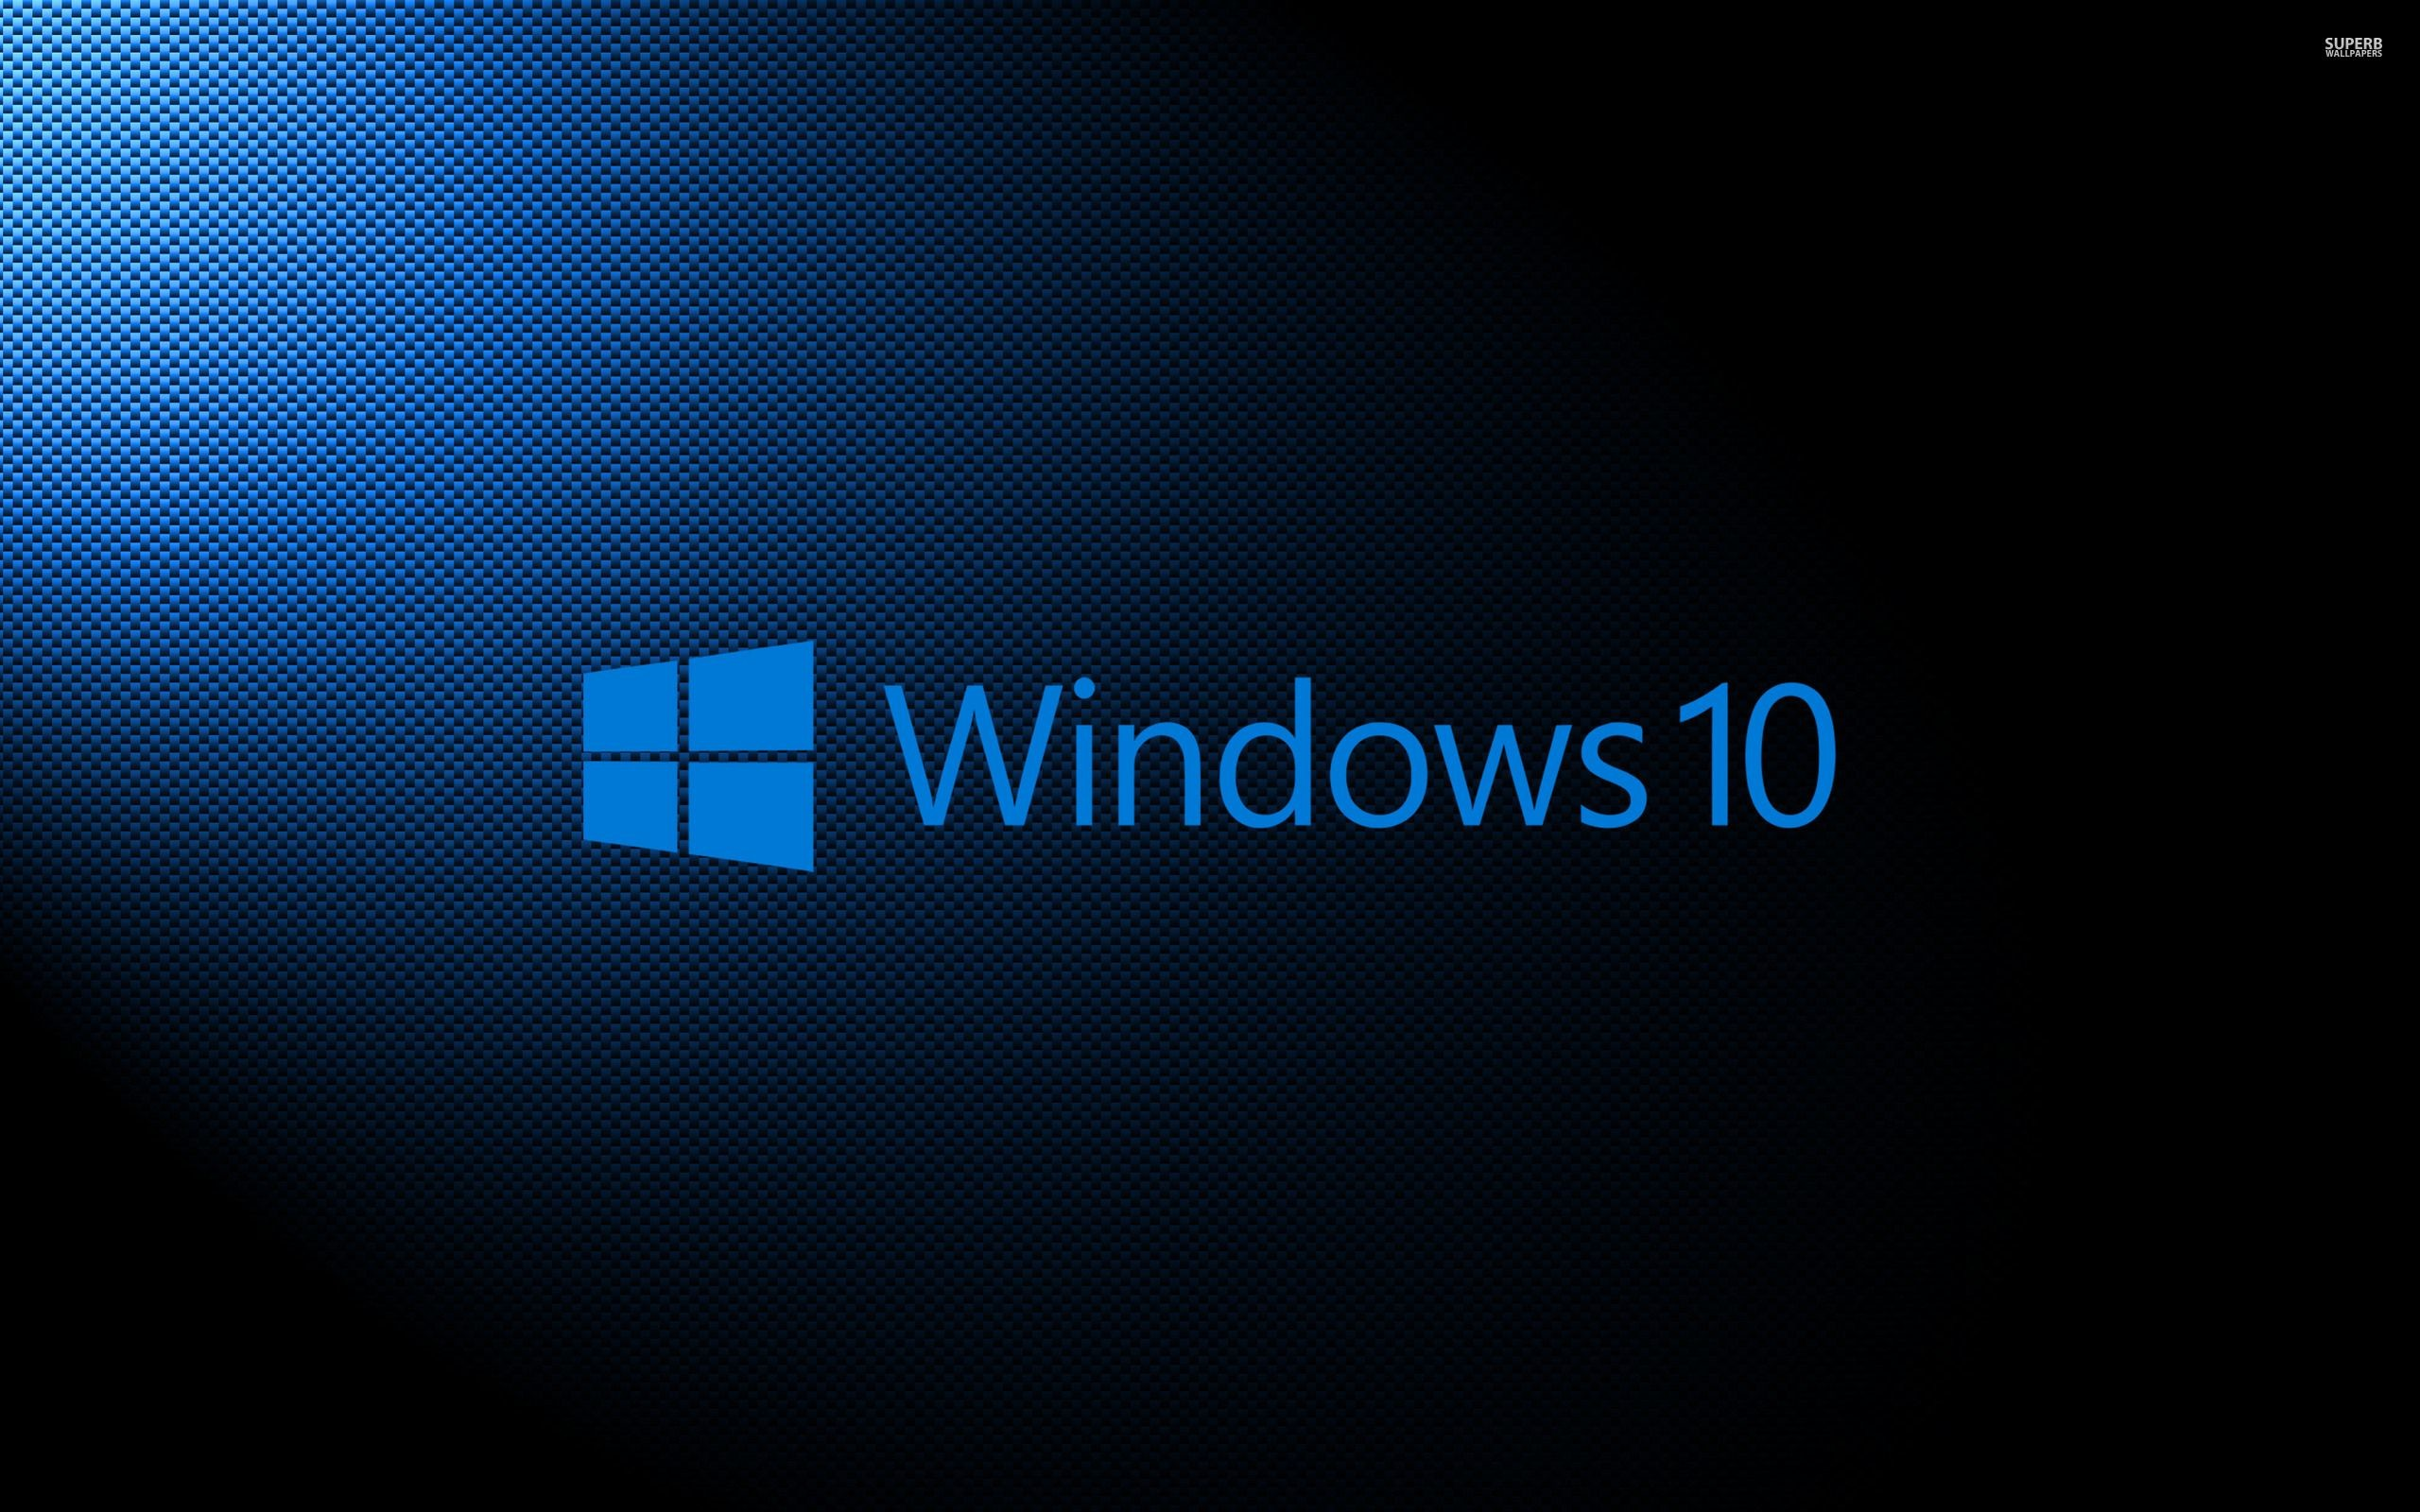 Windows 10 light blue text logo on carbon fiber wallpaper .